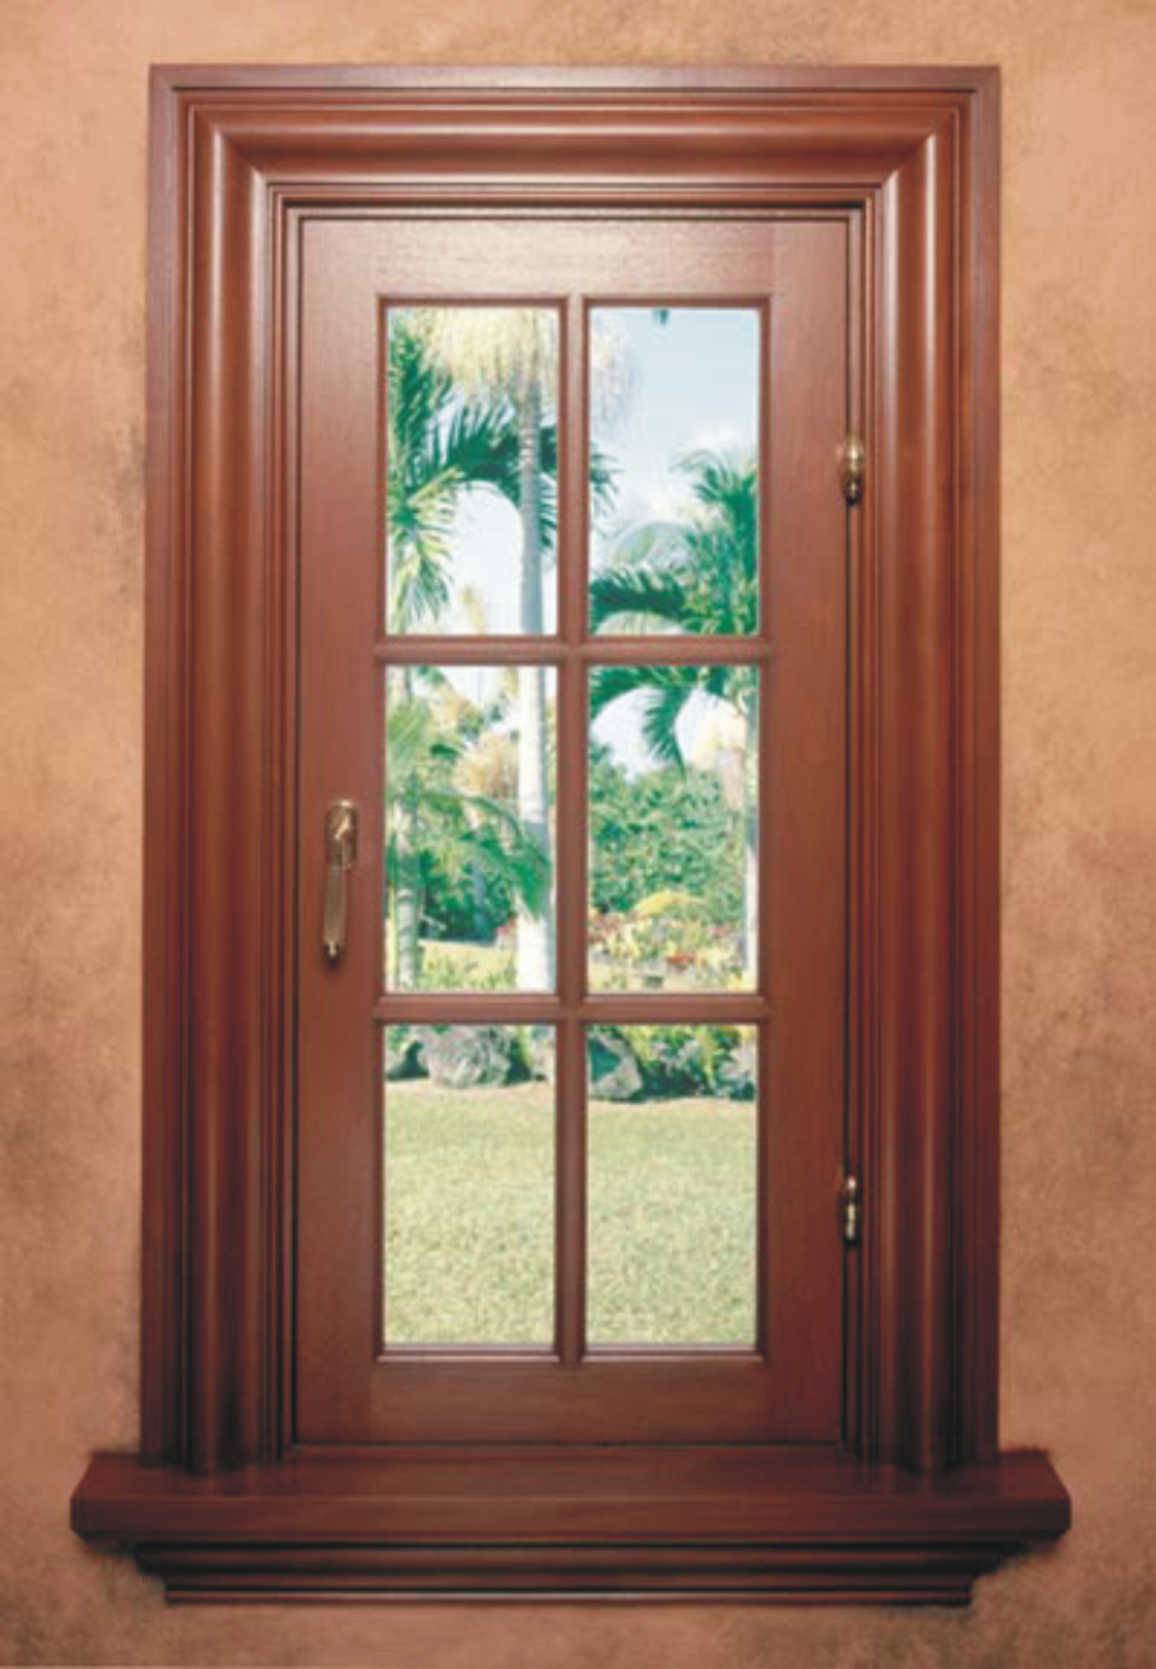 Ramon, Mahogany Impact Windows